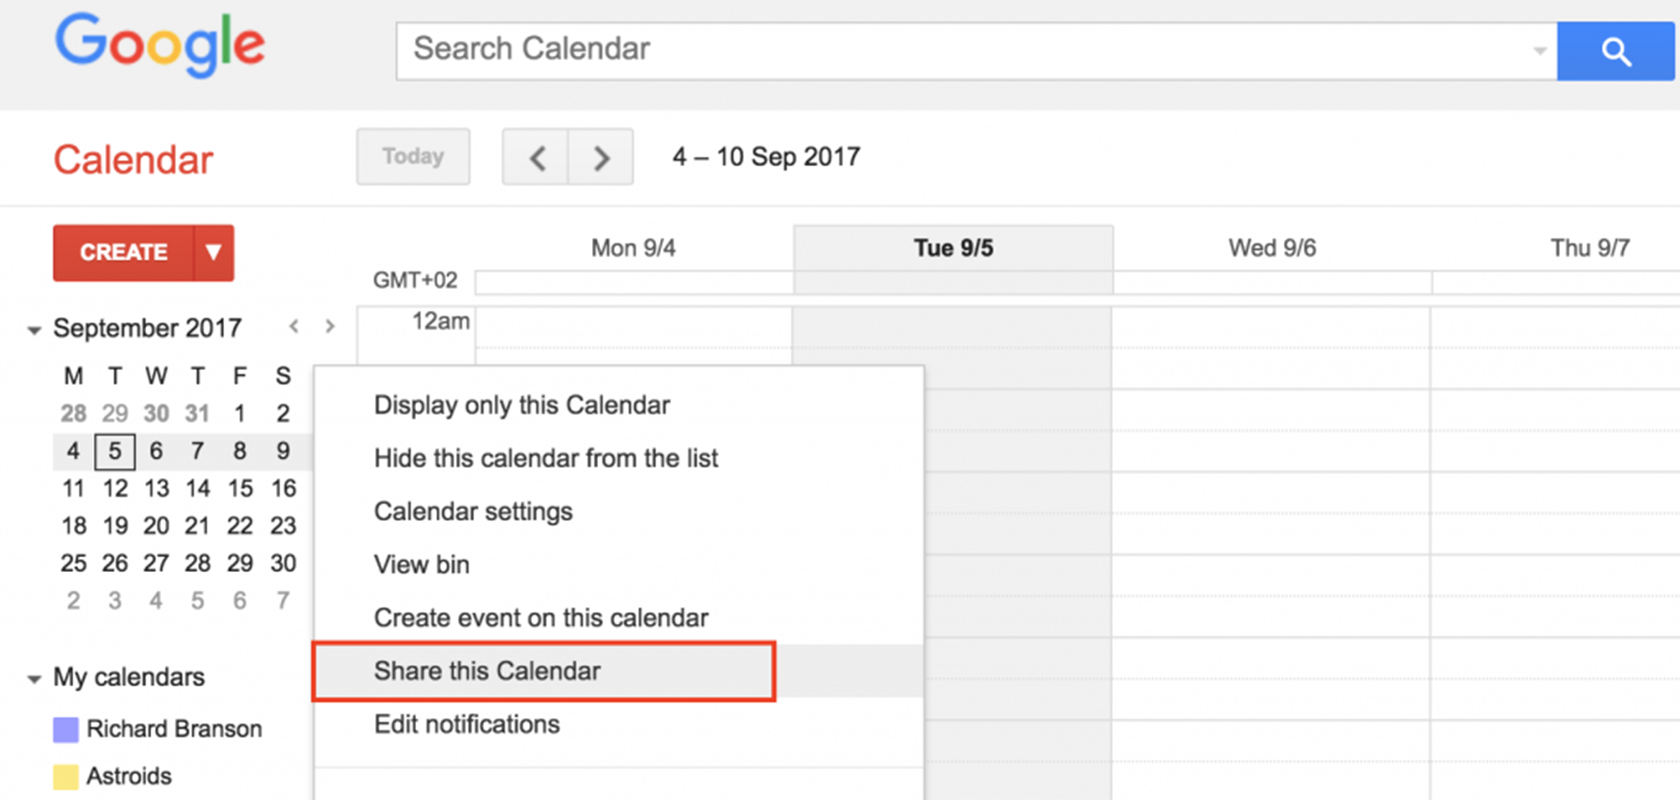 Share Calendar Outside Organization : Share resource calendar with external users in g suite